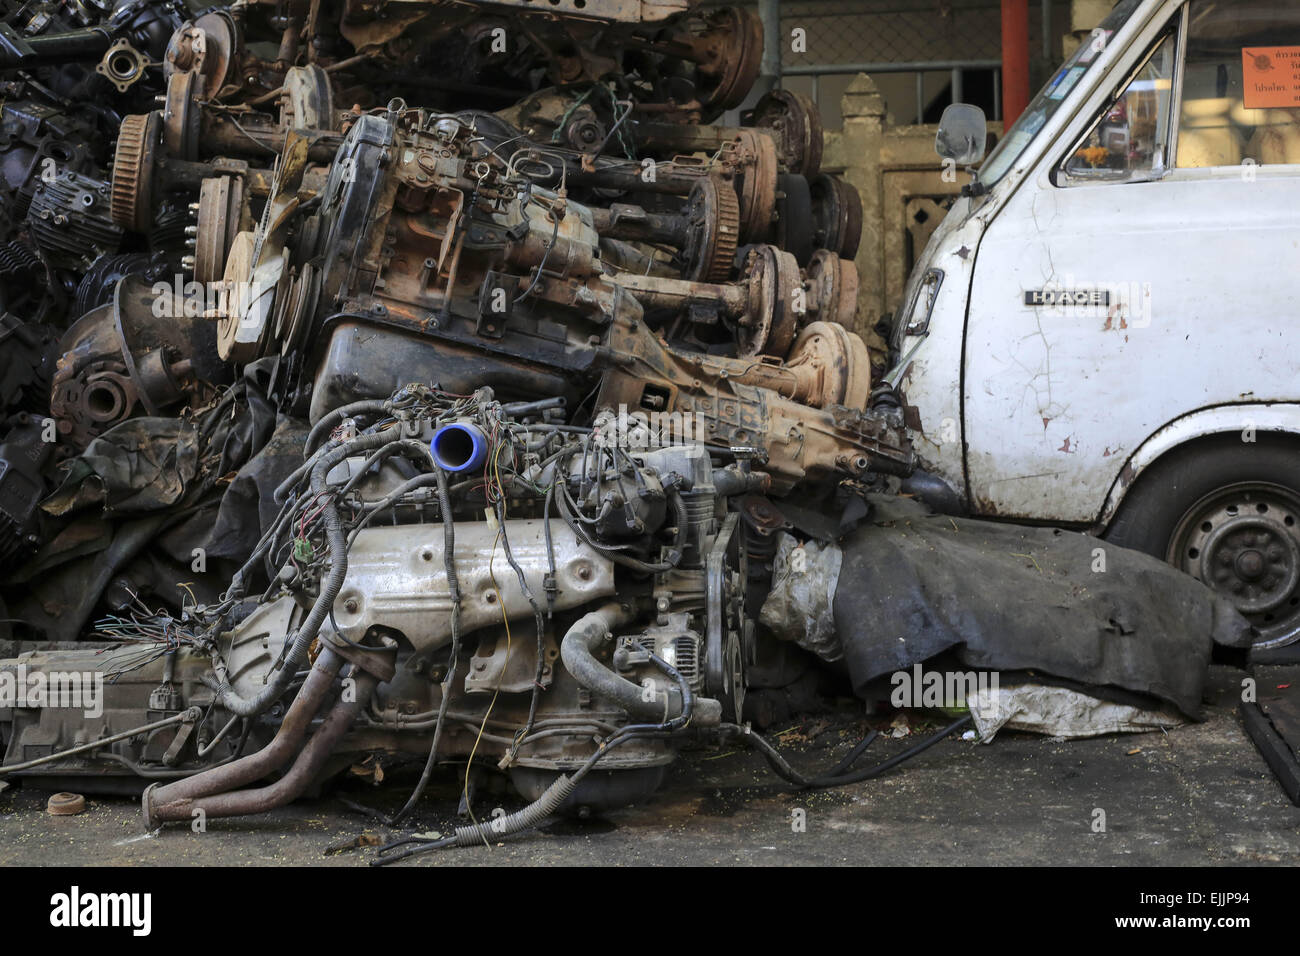 Used Car Parts Stock Photos & Used Car Parts Stock Images - Alamy